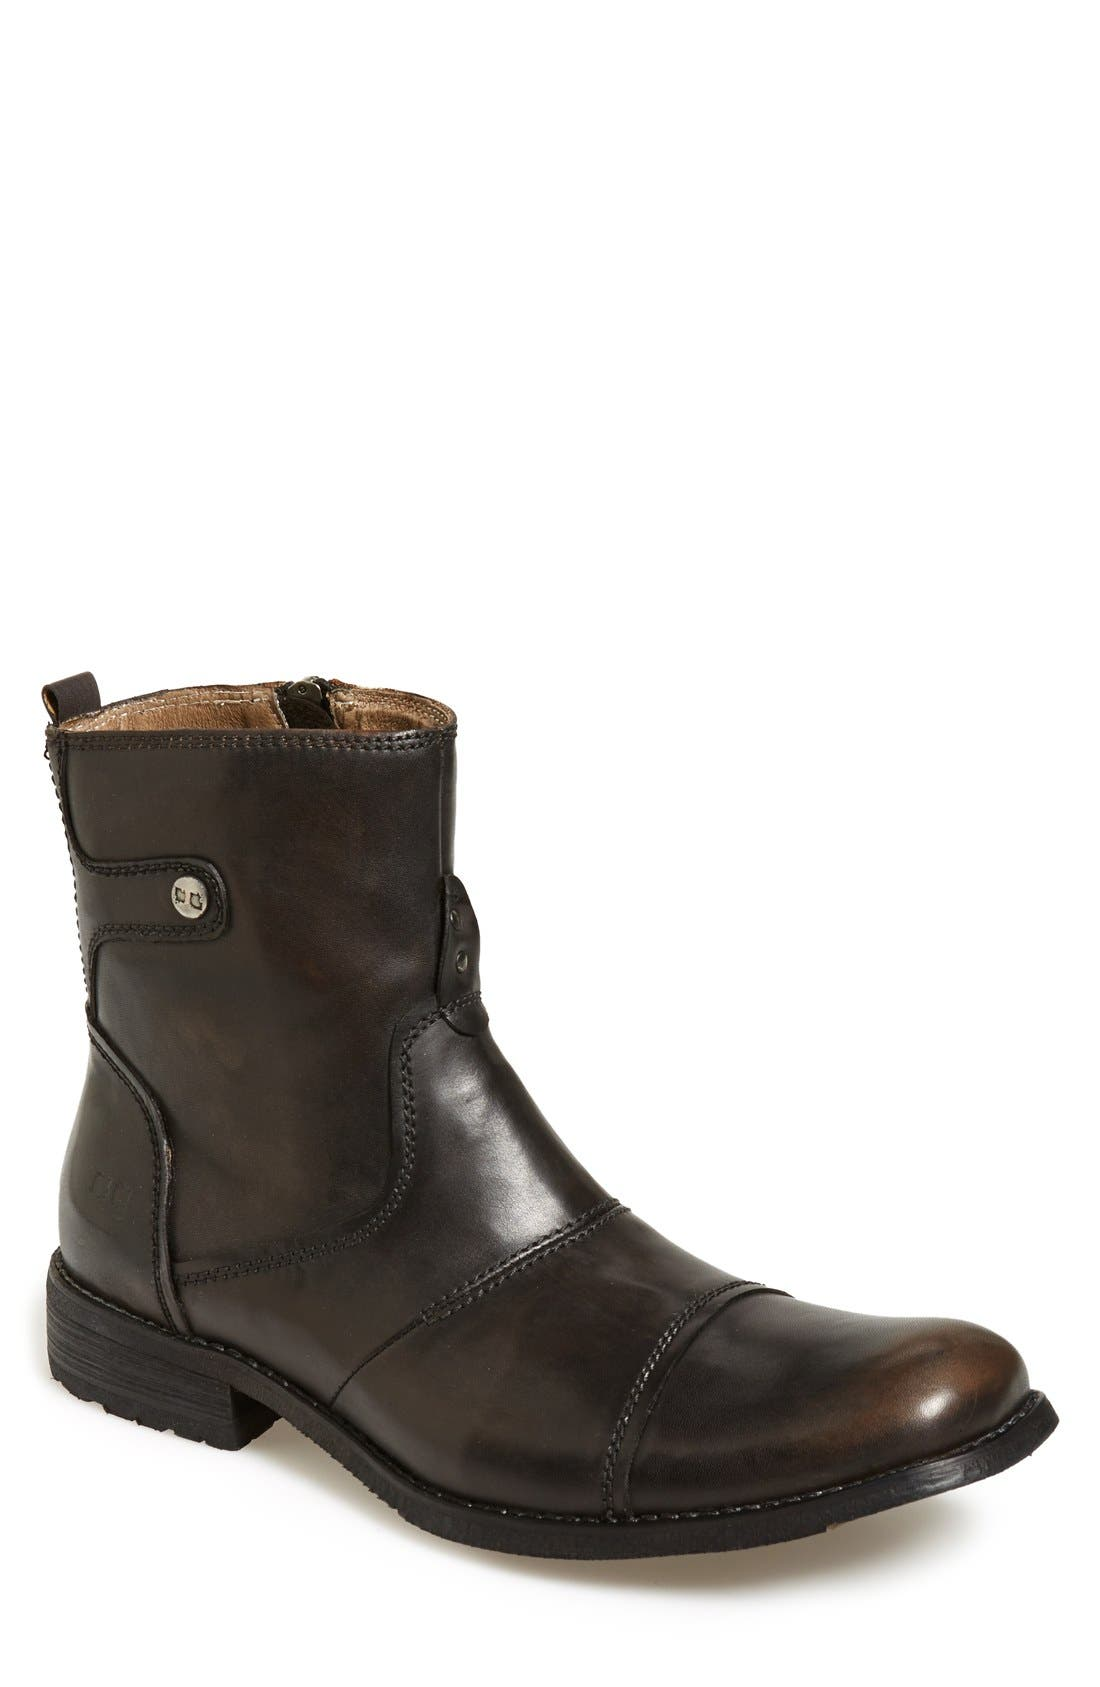 Alternate Image 1 Selected - Bed Stu 'Burst' Boot (Online Only) (Men)